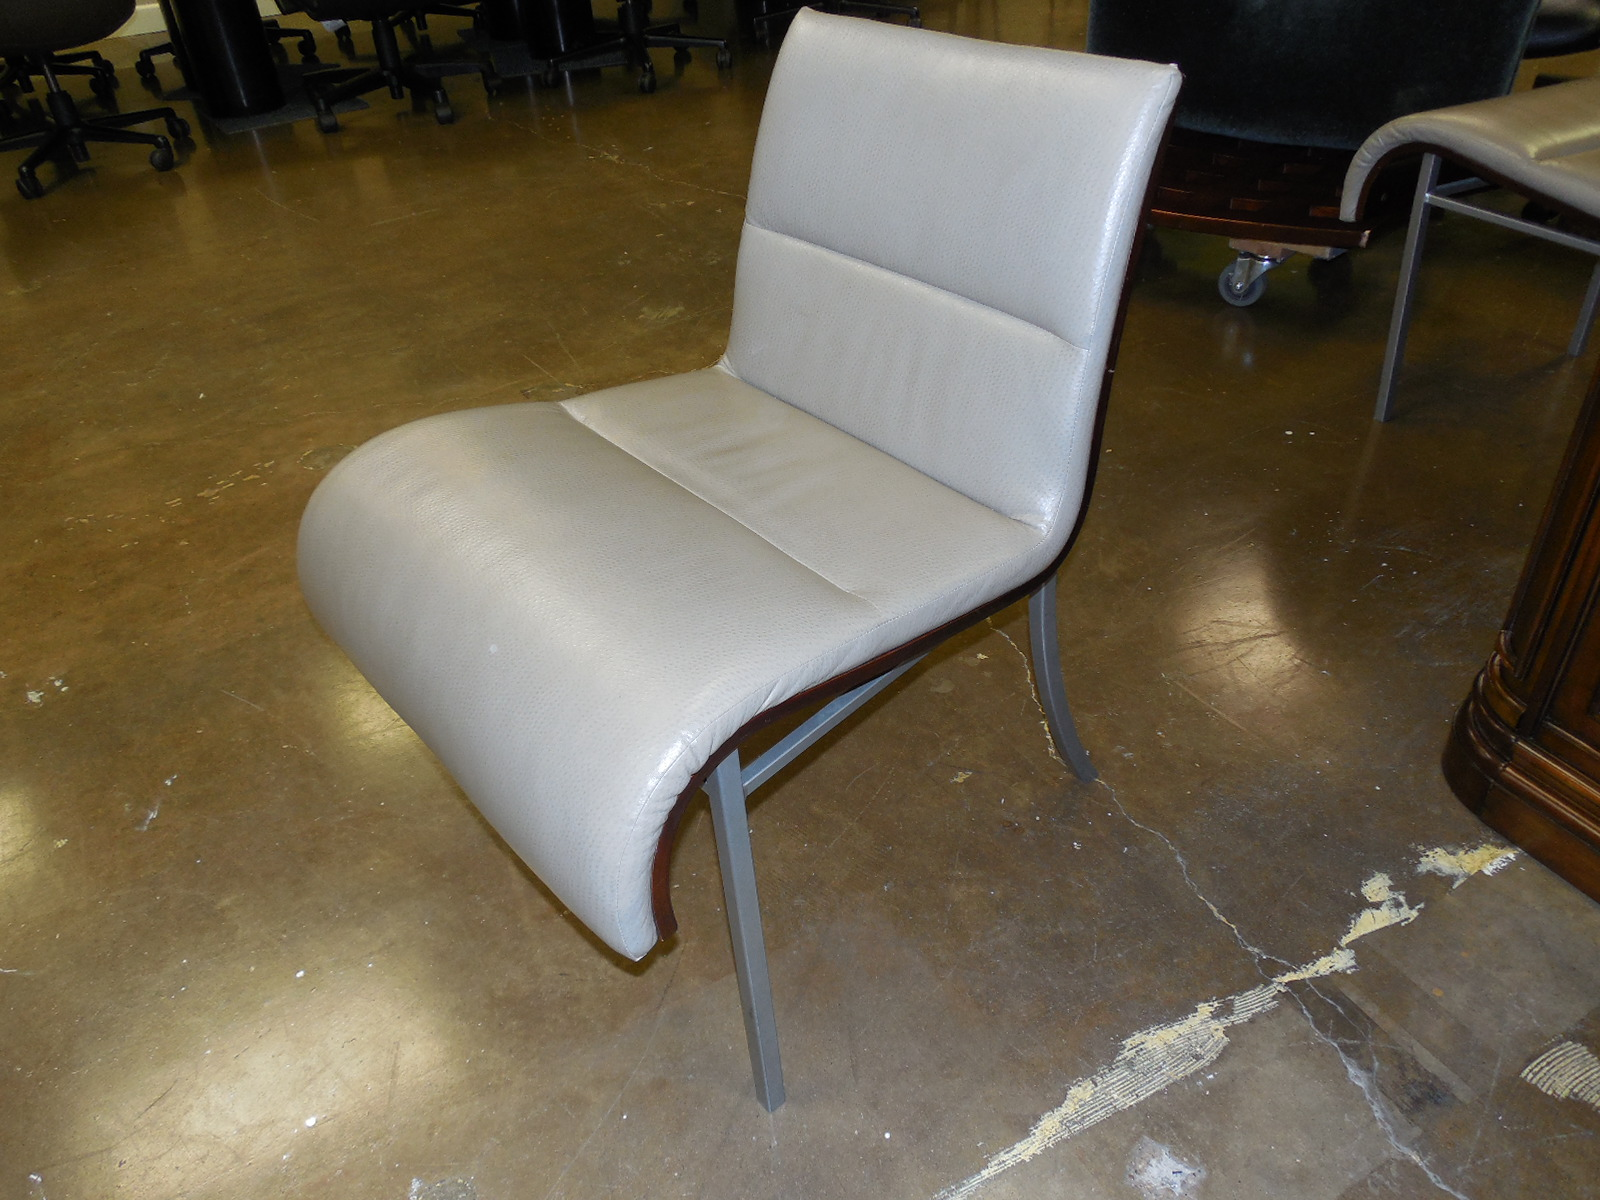 HBR Armless Lounge, NDOF, Left Side View